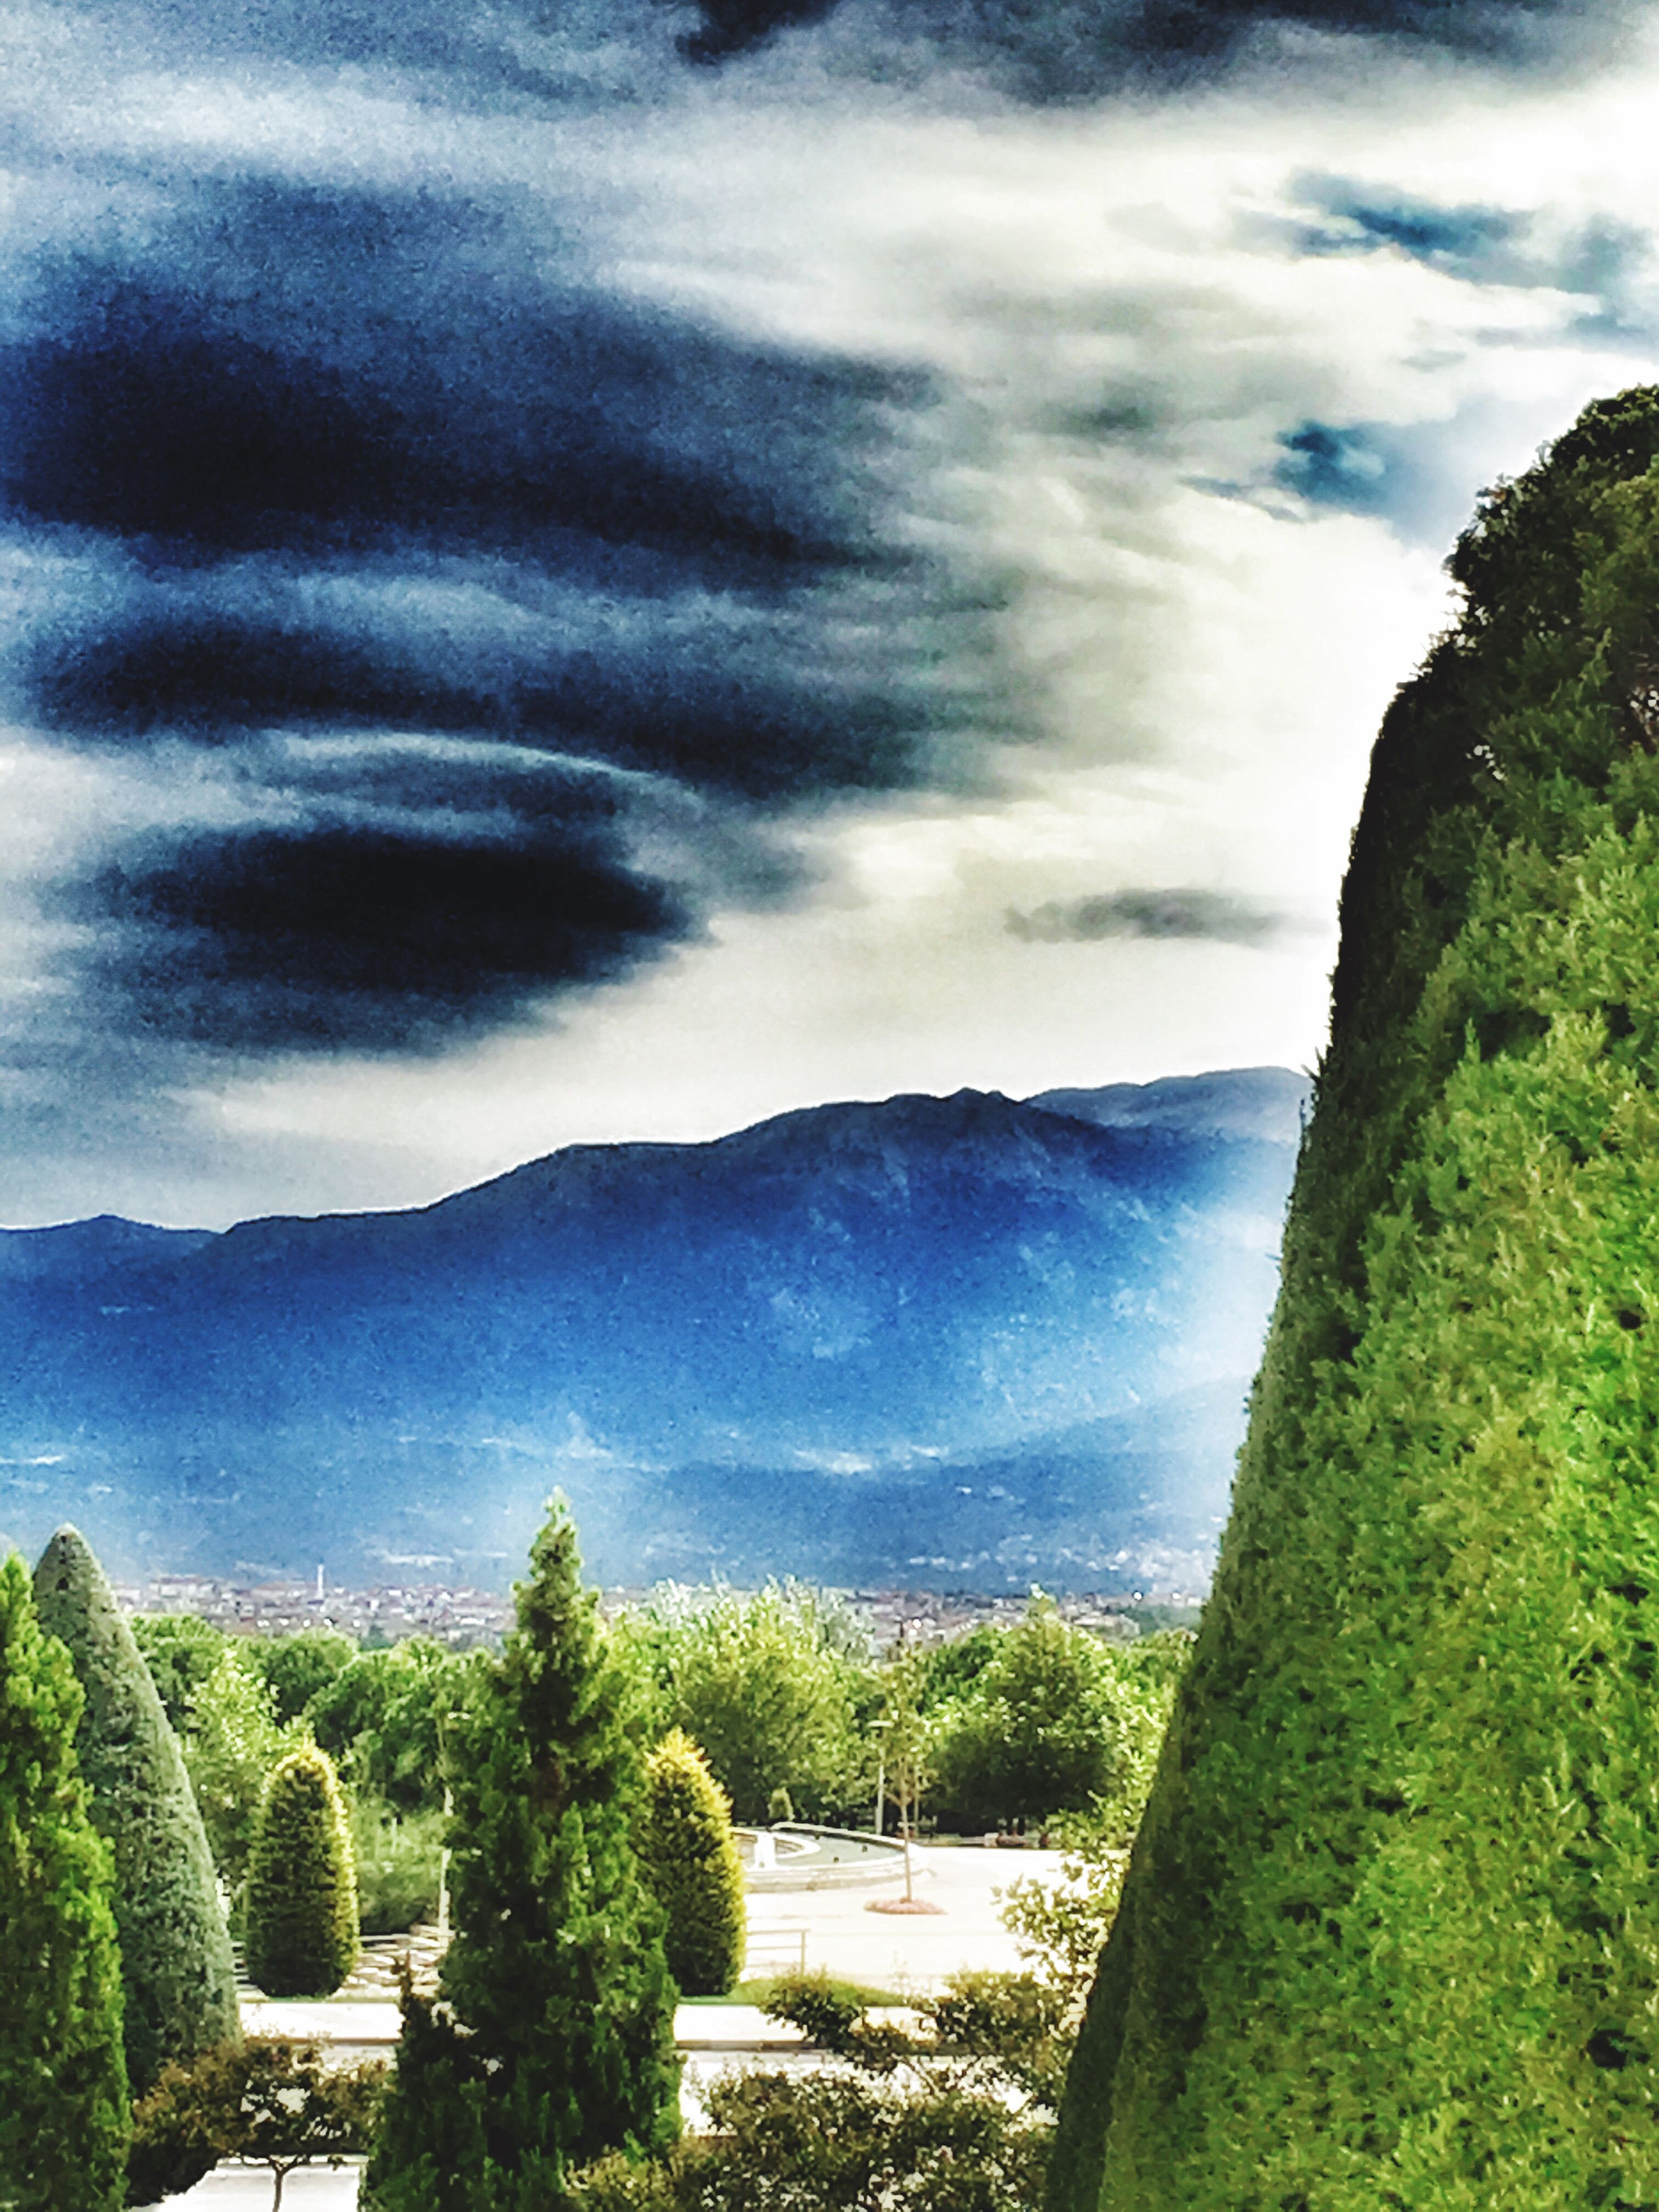 mountain, scenics, tranquil scene, tree, tranquility, beauty in nature, cloud - sky, growth, sky, tourism, nature, plant, non-urban scene, travel destinations, sea, water, outdoors, majestic, mountain range, cloudy, day, solitude, remote, no people, green color, in front of, storm cloud, physical geography